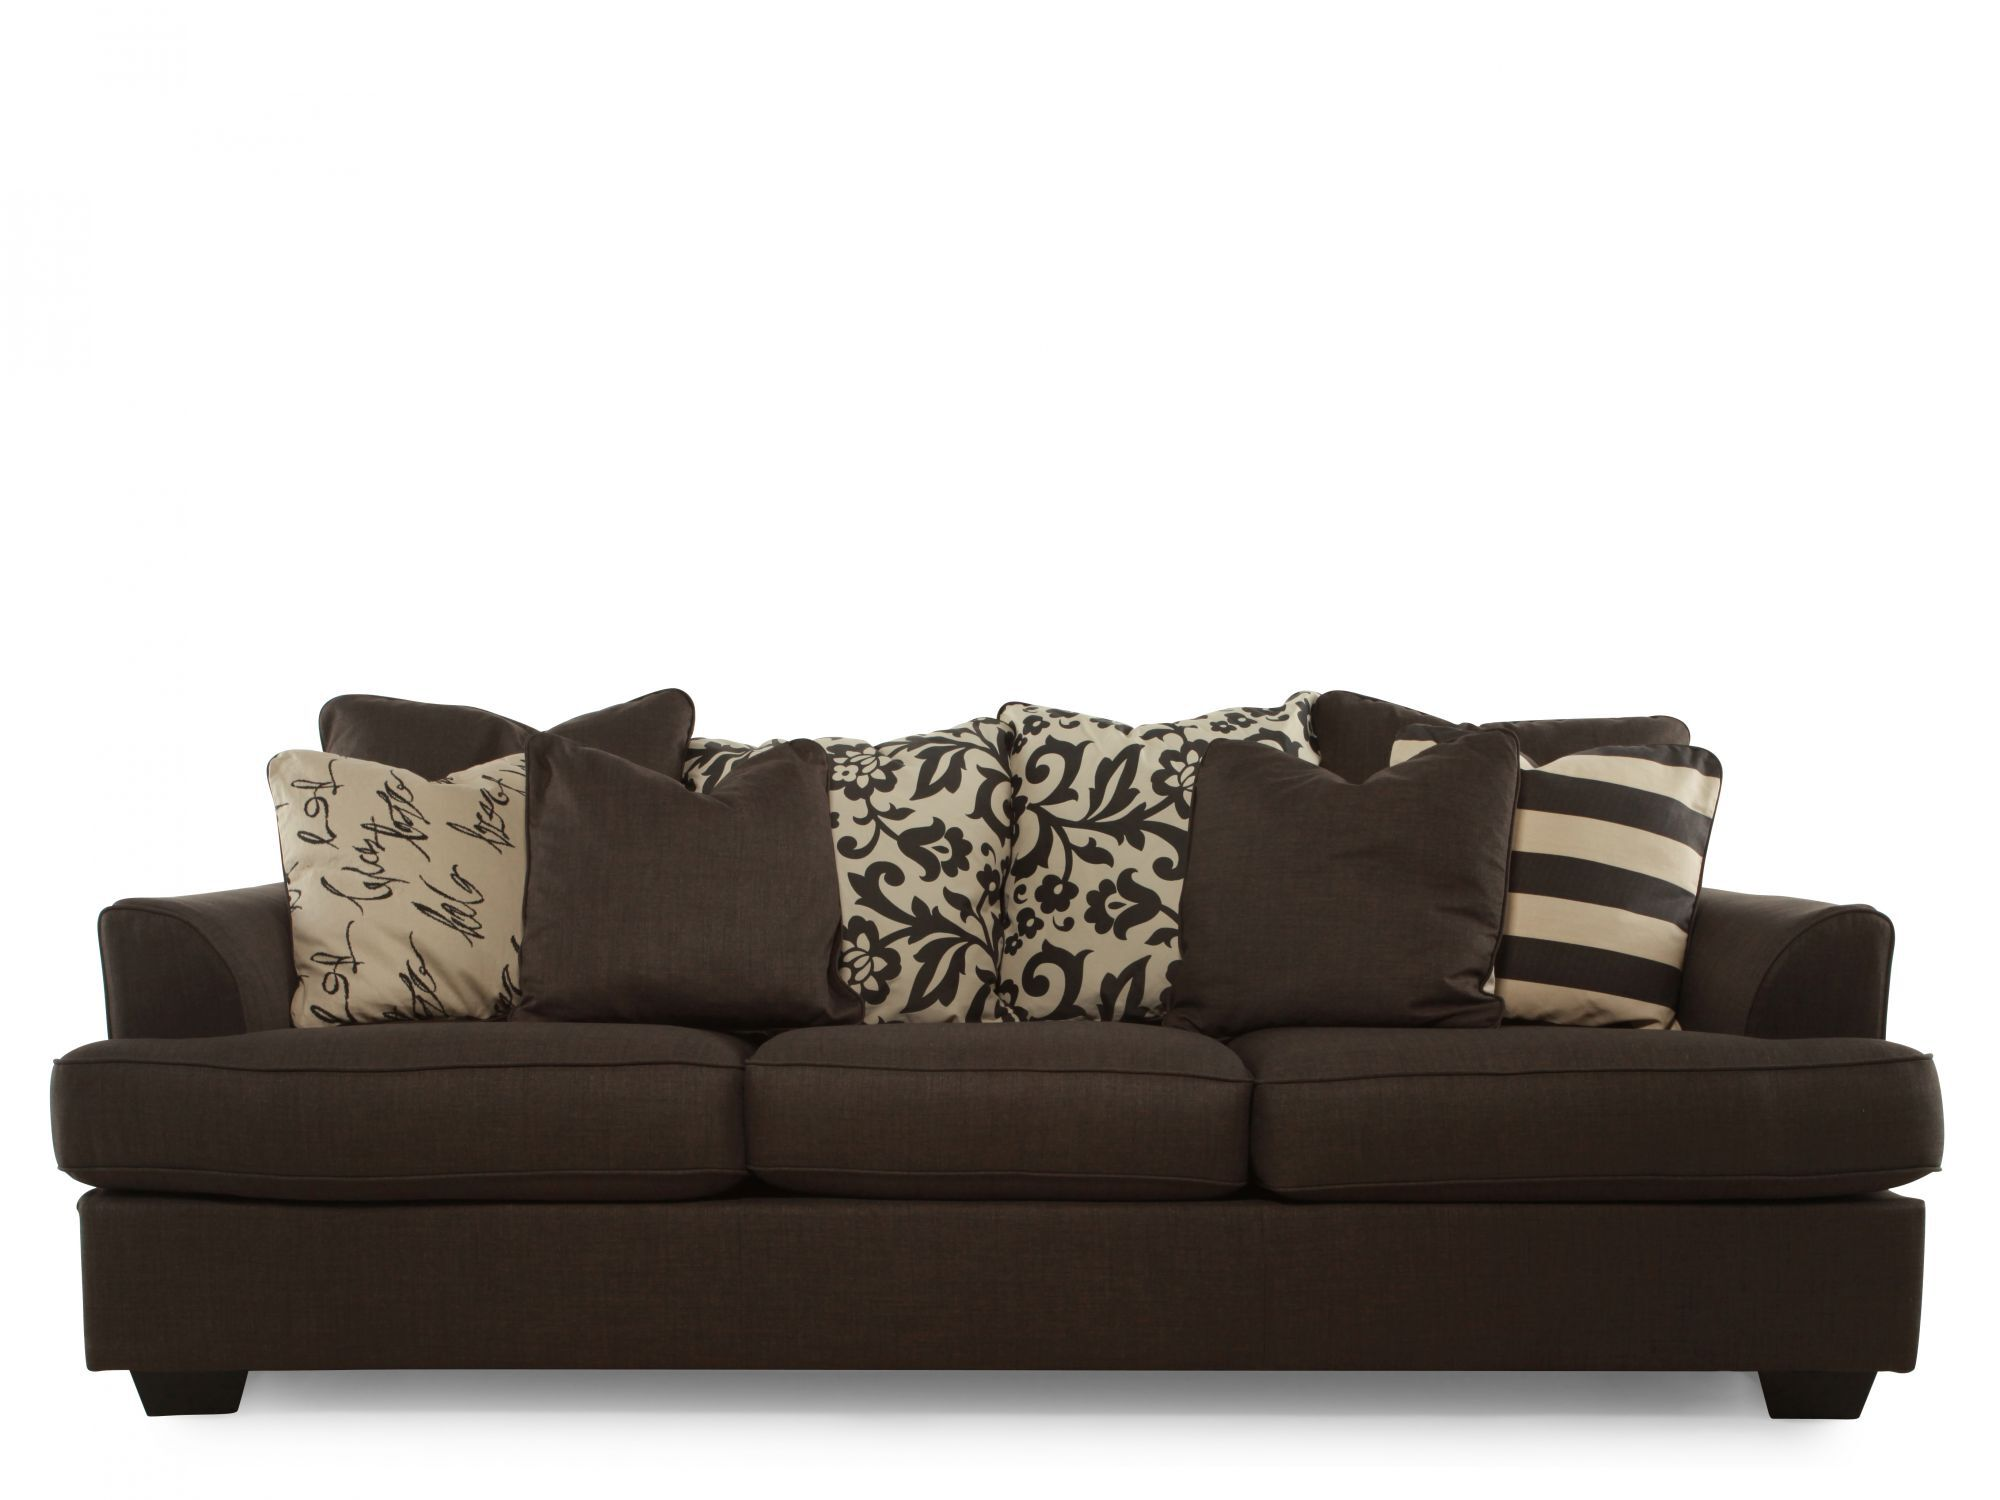 Low Profile Casual 96 Sofa In Charcoal